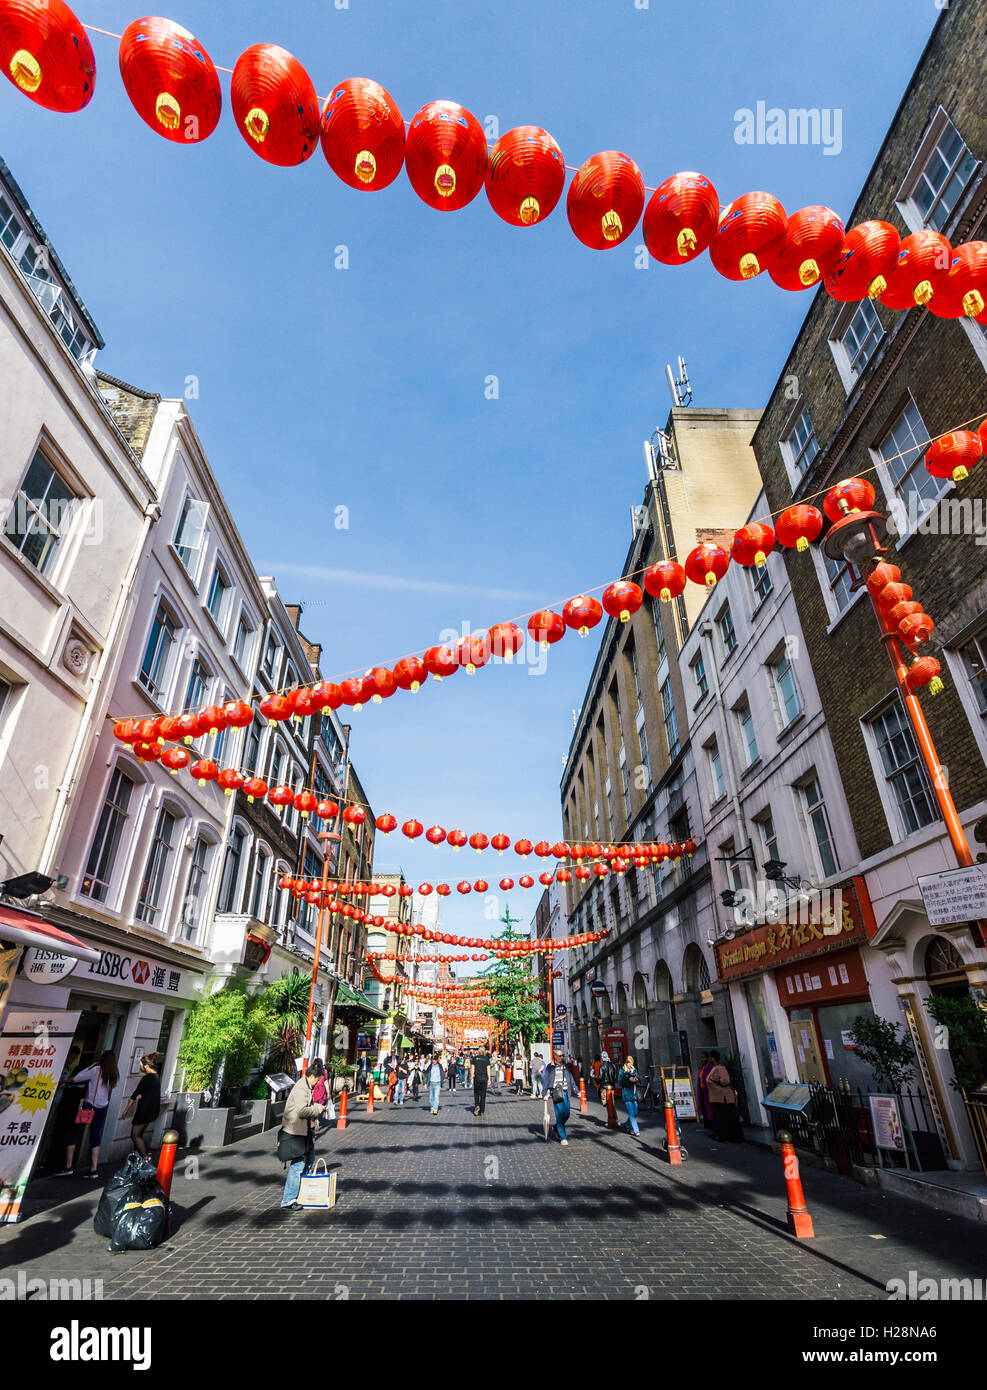 China Town is decorated by Chinese lanterns during Chinese New Year in London Stock Photo